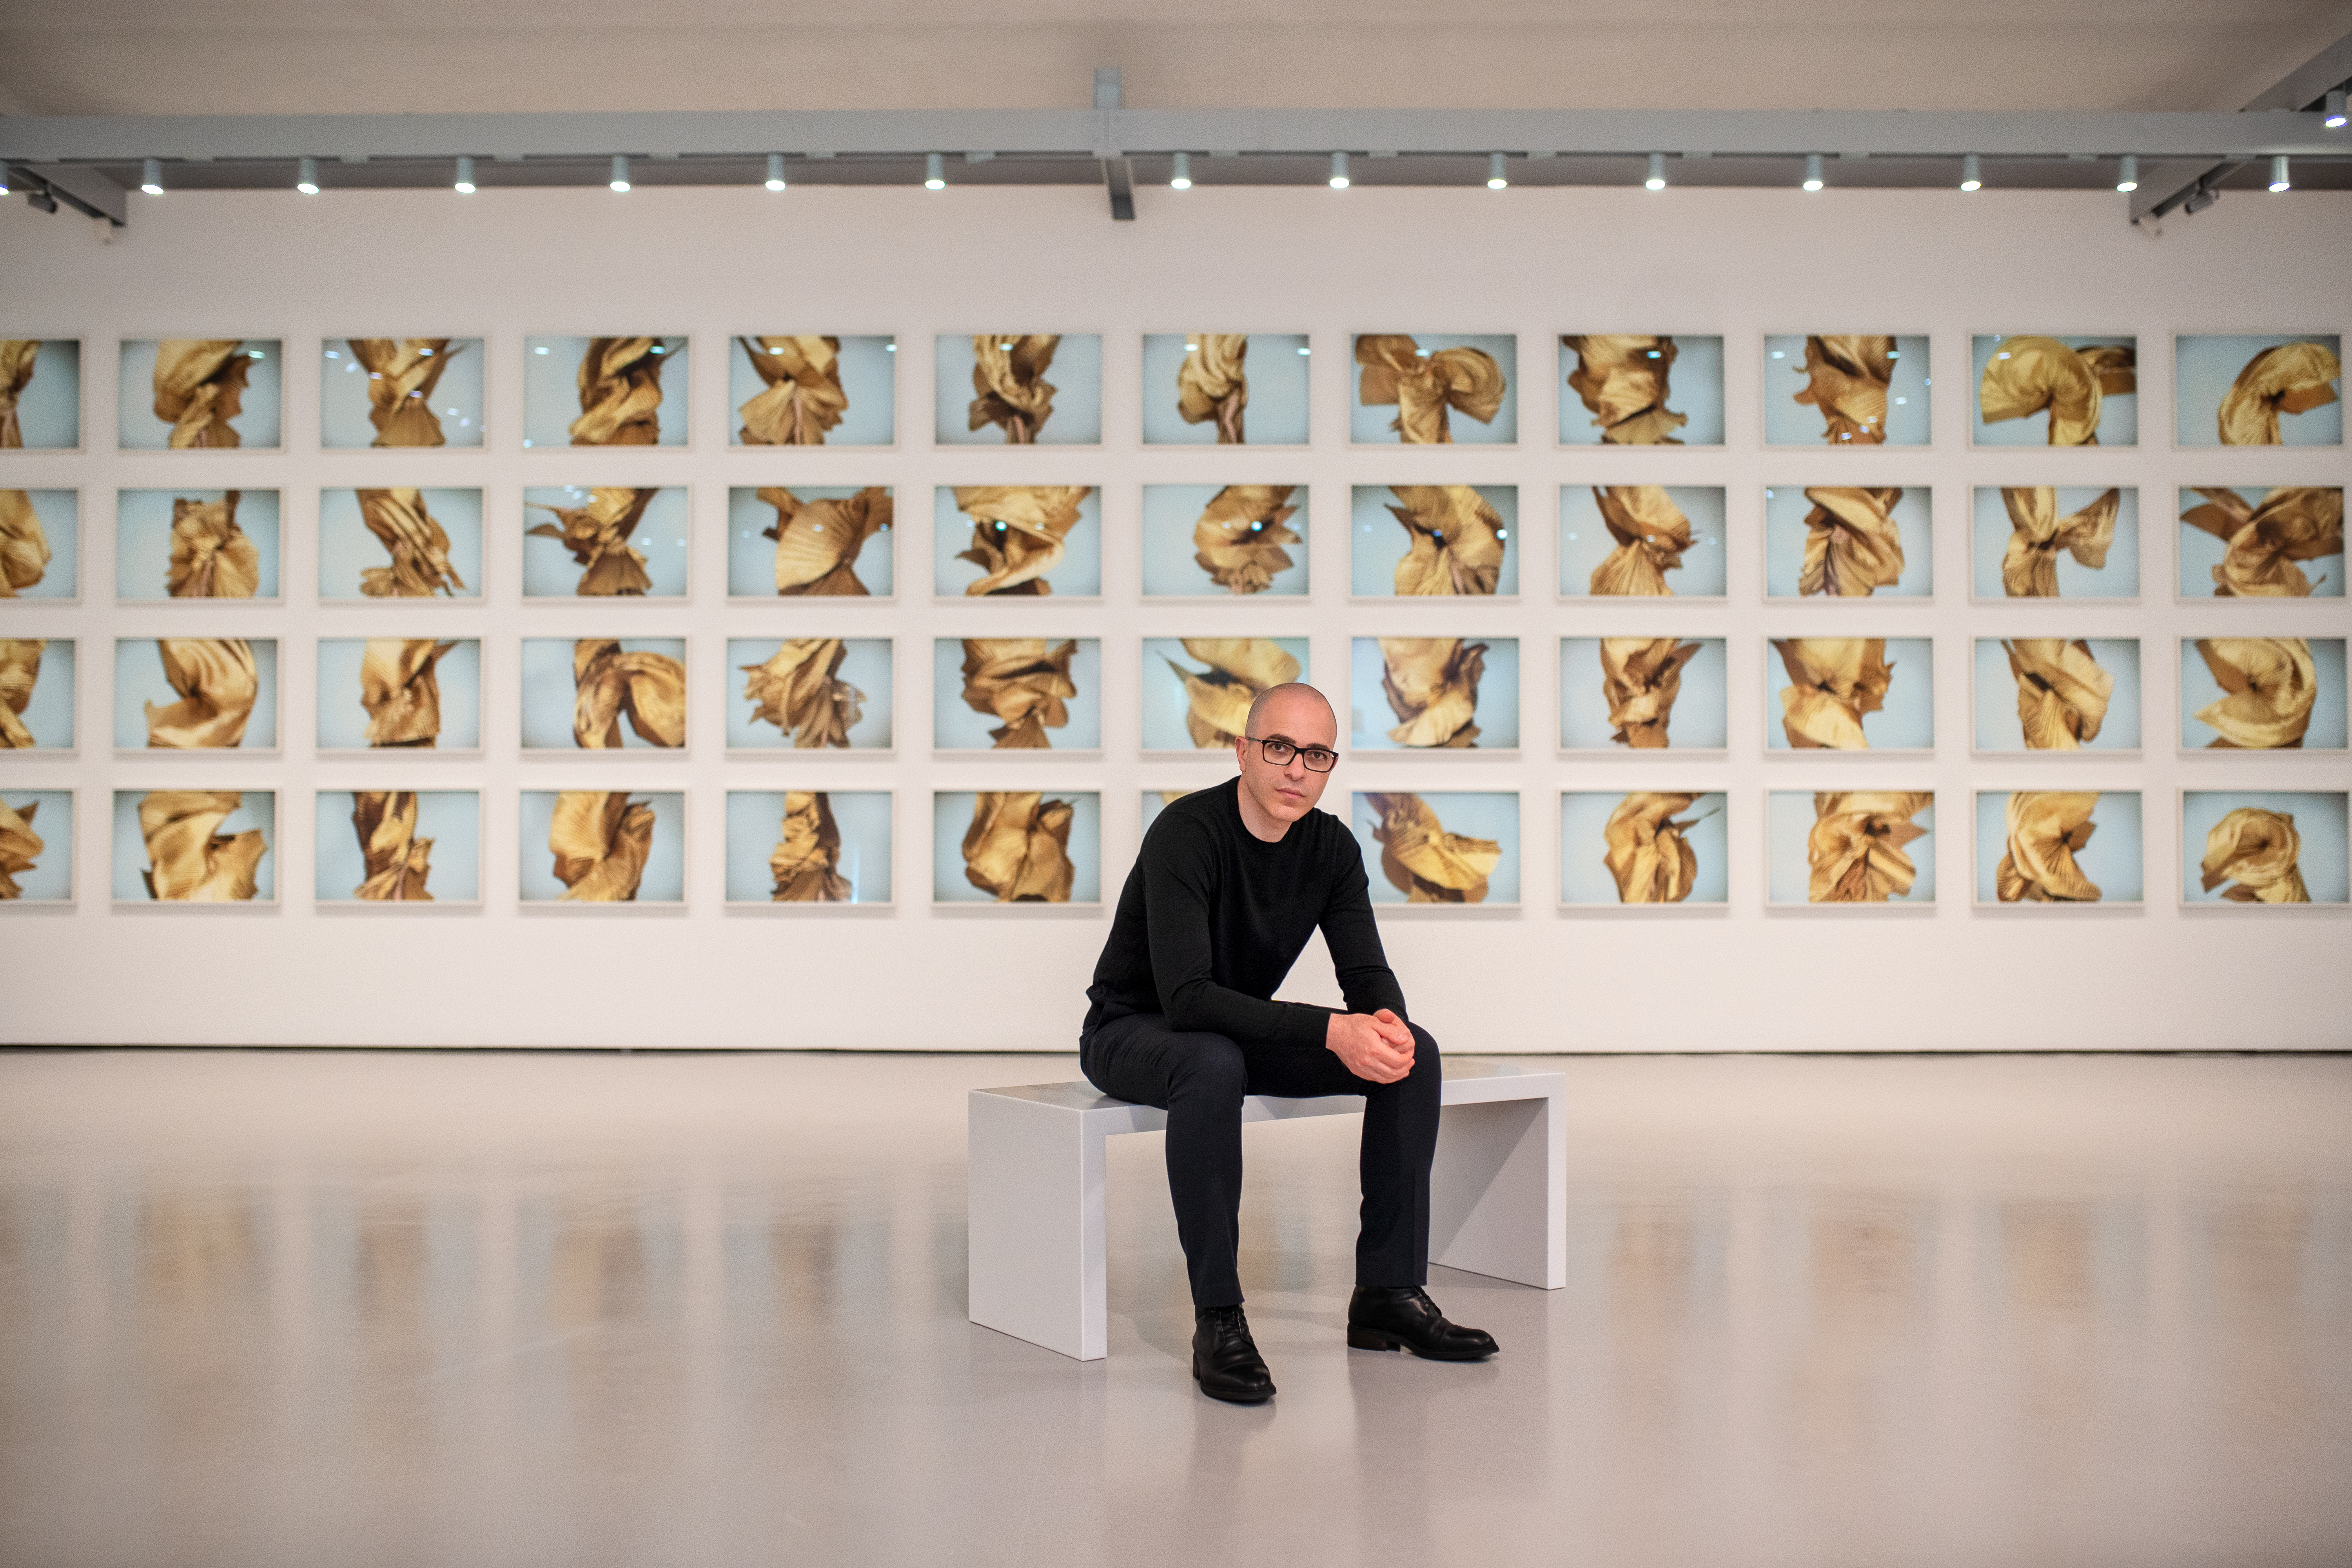 Youssef Nabil at his exhibition in Palazzo Grassi Museum in Venice, Italy, in September 2020. ©Matteo De Fina.